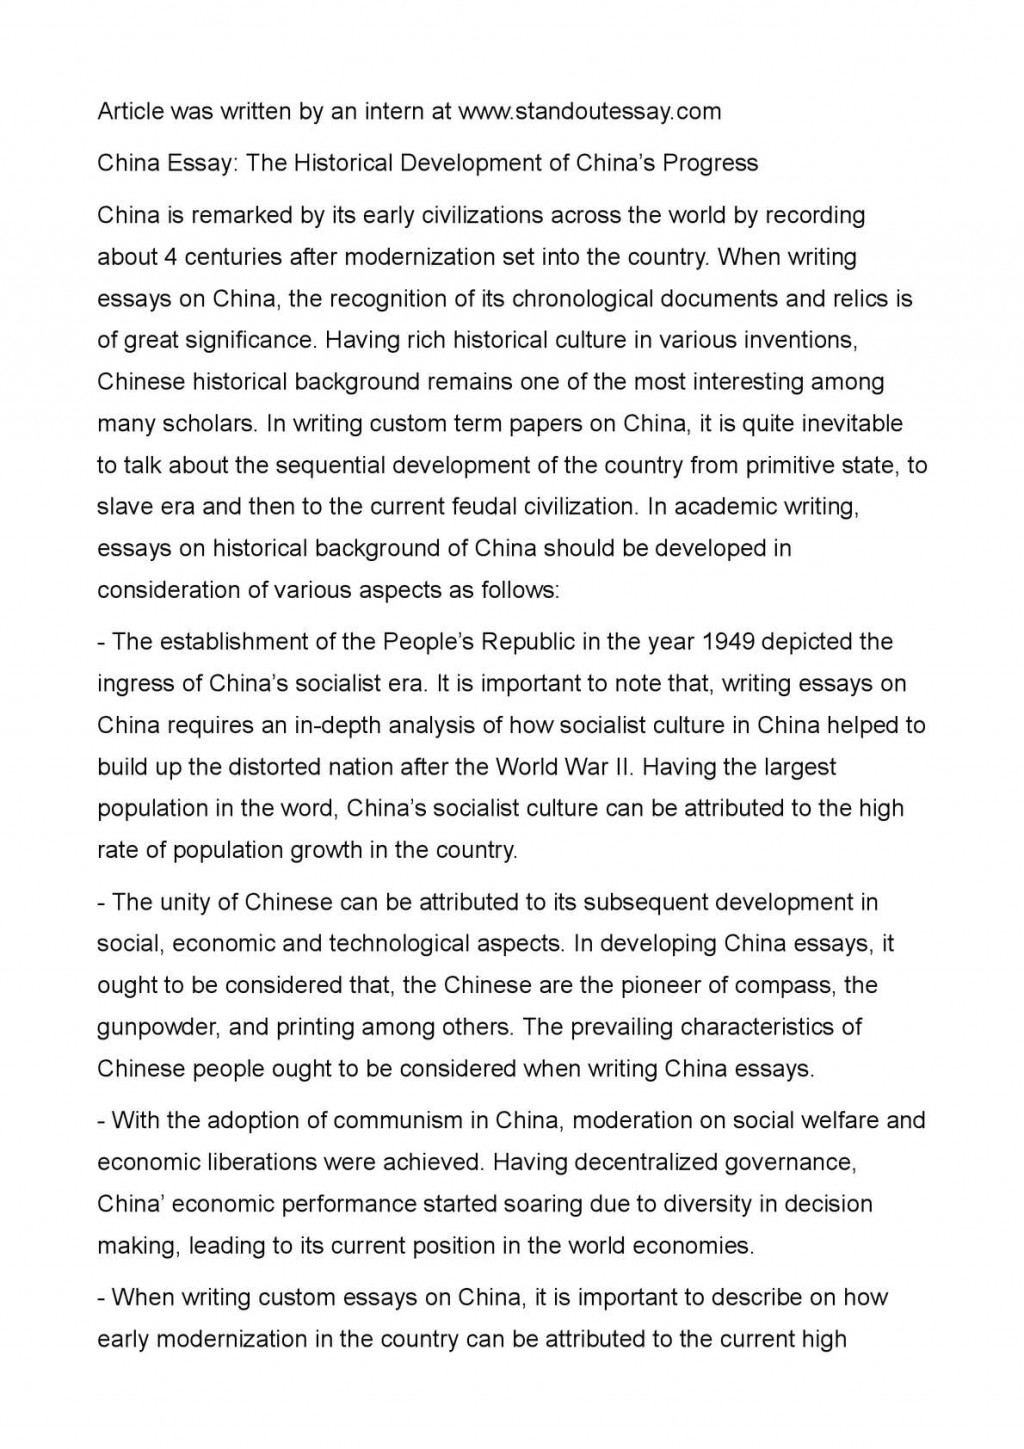 006 Essay Example Chinese Amazing Art Topics Vce Formats Sheet Large